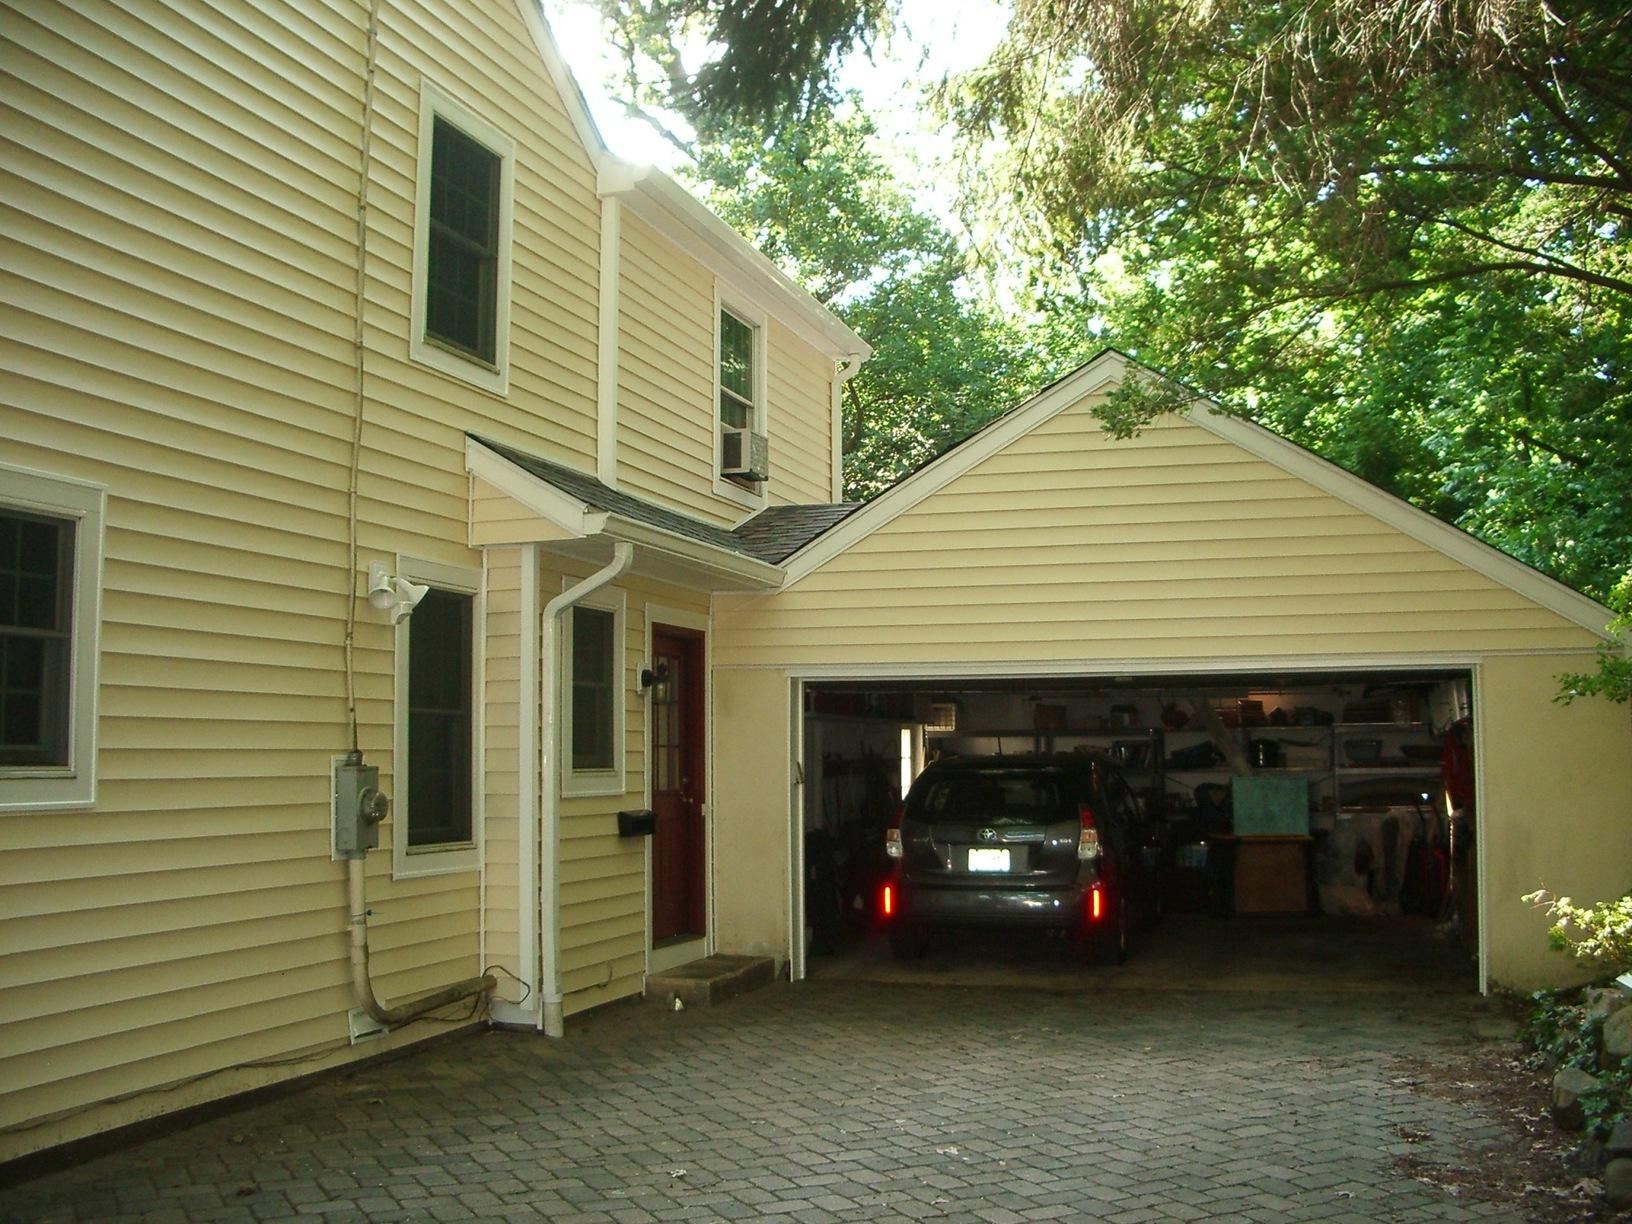 Replacing Old Wood Siding with Adobe Cream Insulated Vinyl Siding with White Trim in Mountain Lakes, NJ - After Photo